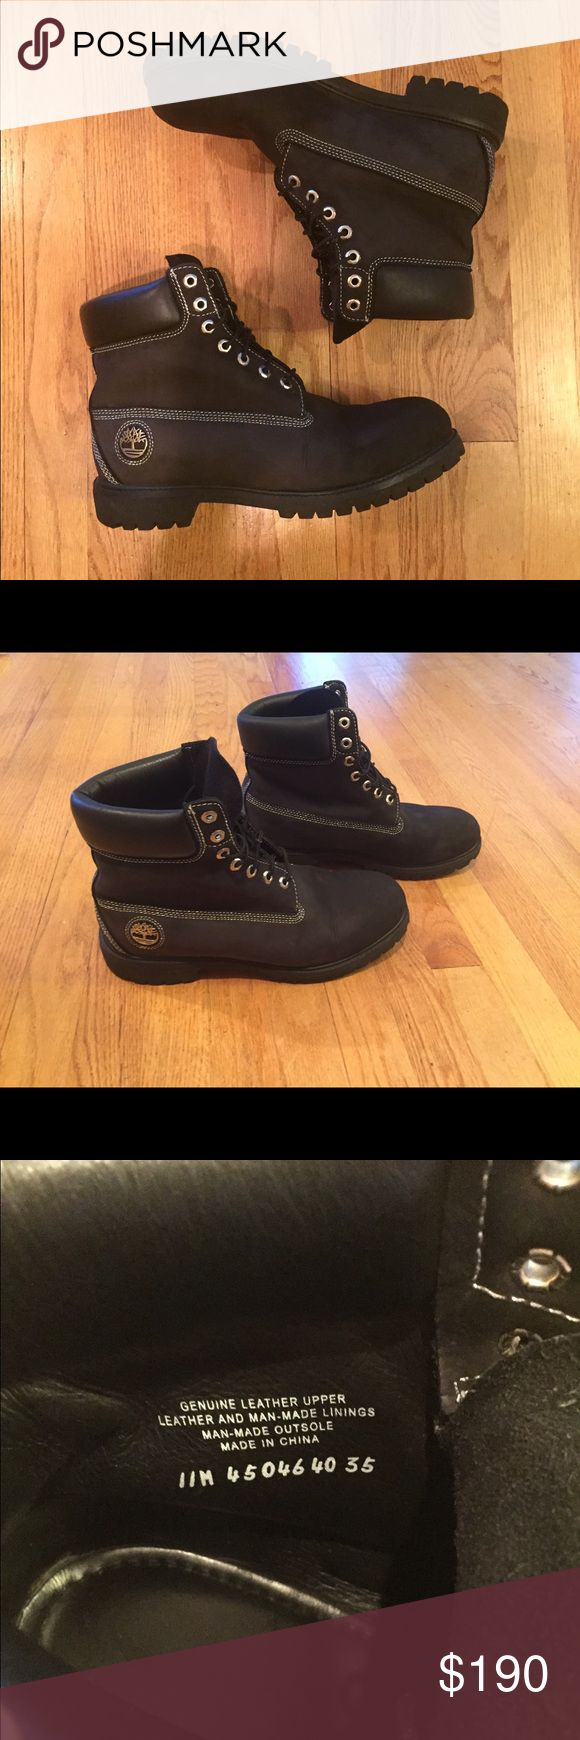 Timberland boots Black limited edition. Purchased few years ago but used very carefully at the time used so there's no damage to it. It still looks almost like new. ❌No trade❌Bundle discount. Timberland Shoes Boots